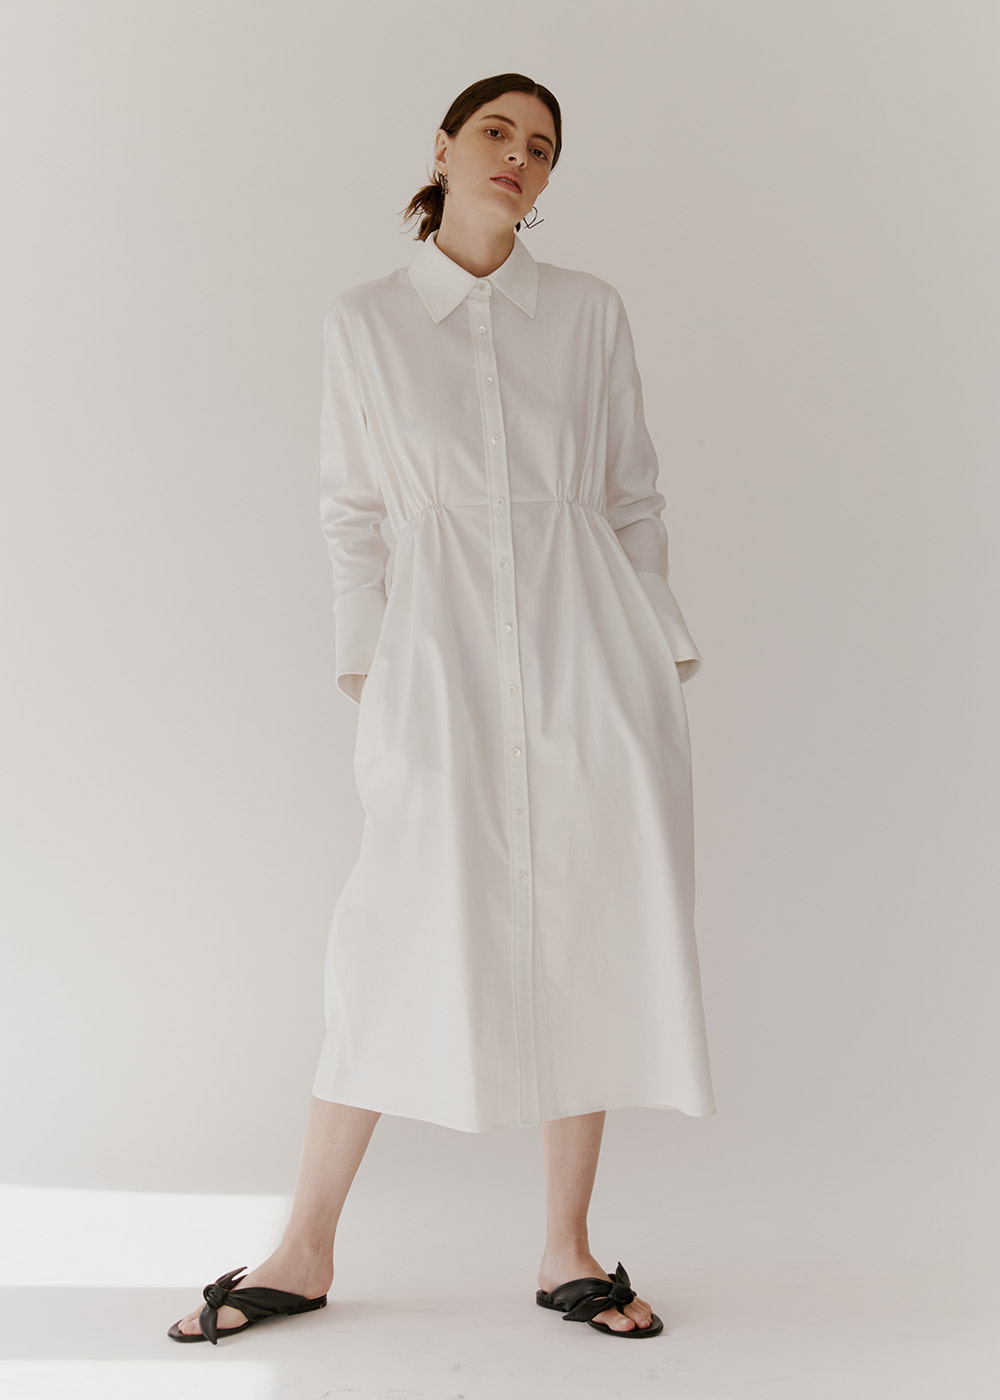 GATHERED-DETAIL SHIRT DRESS - WHITE